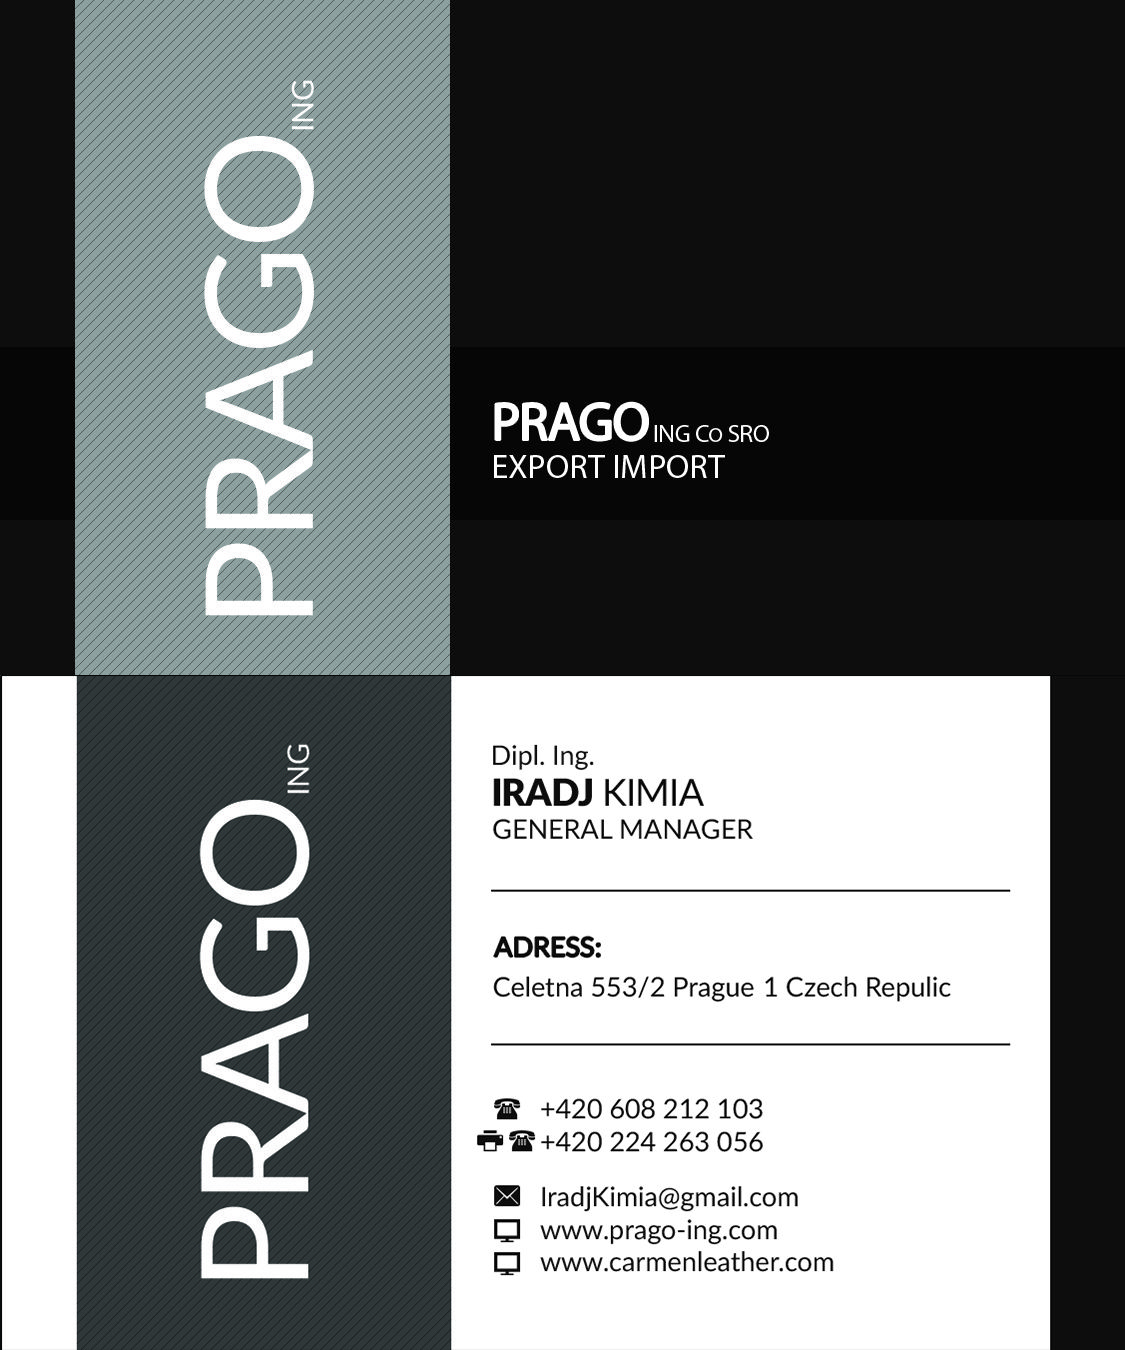 PRAGO Business Card, Front and Back page